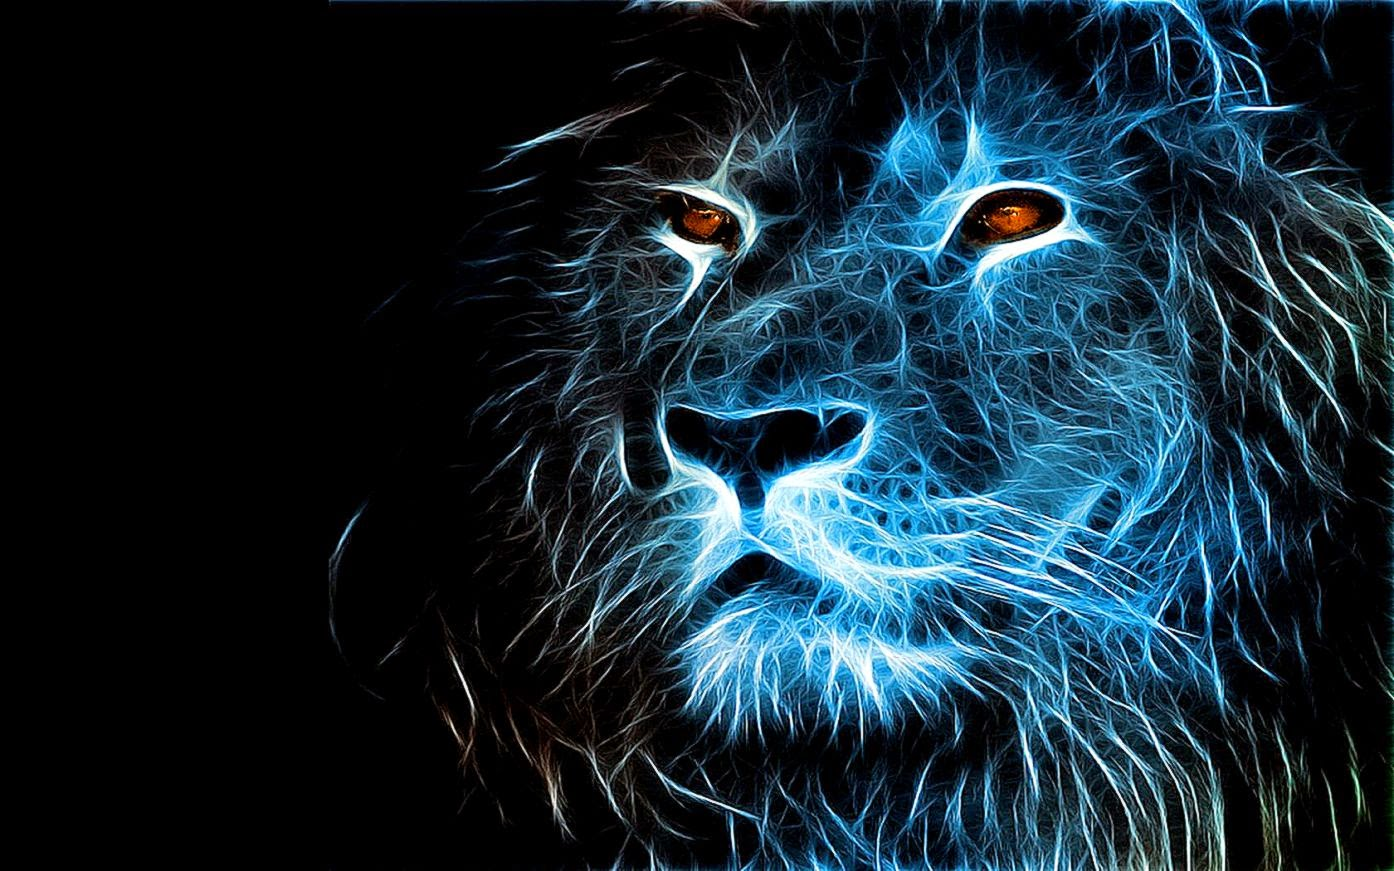 Blue lion wallpaper hd - photo#6